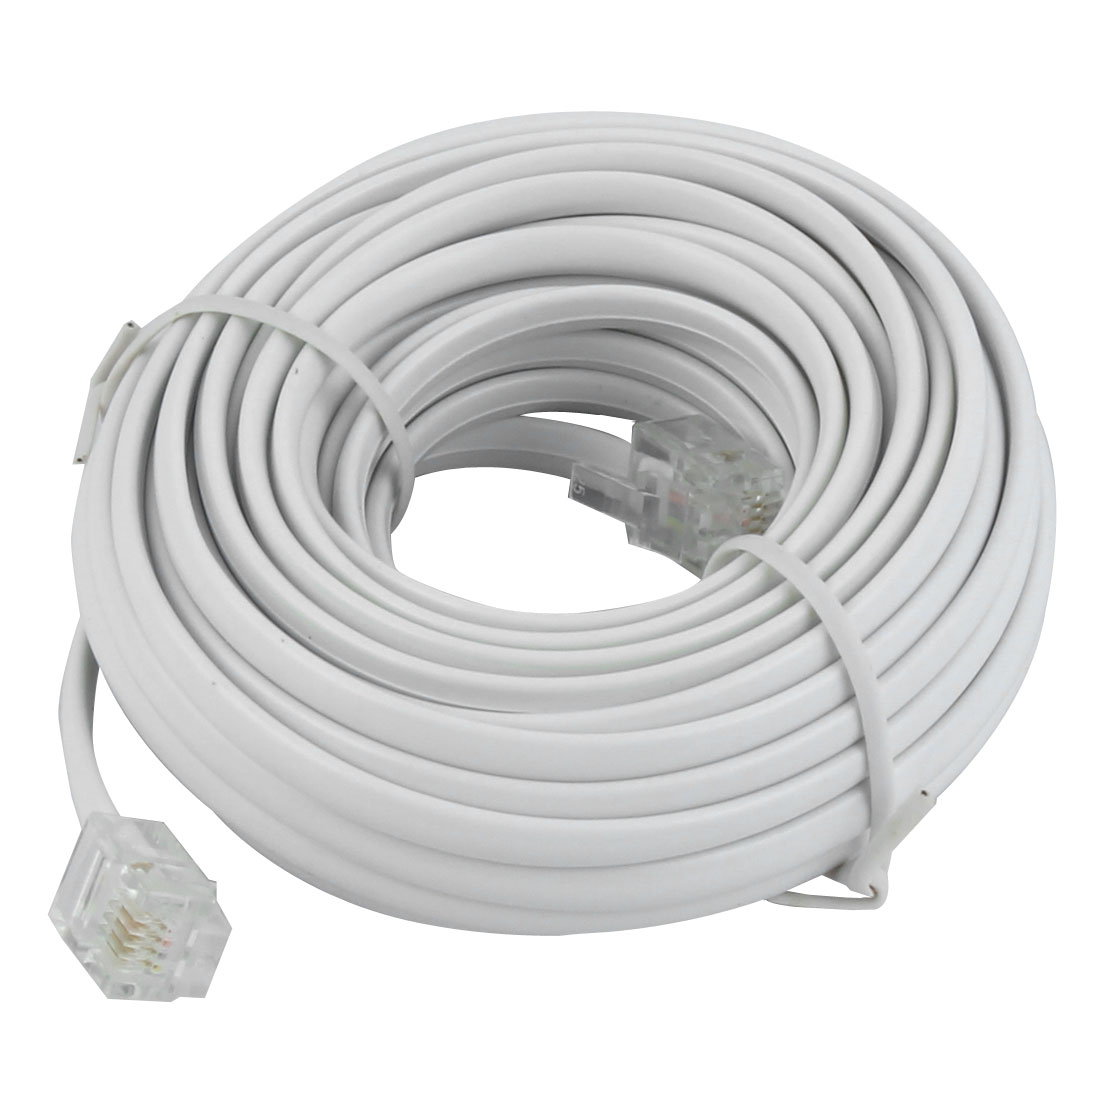 6M 20Ft 6P4C RJ11 Telephone Phone Flat Line Cord Cable White